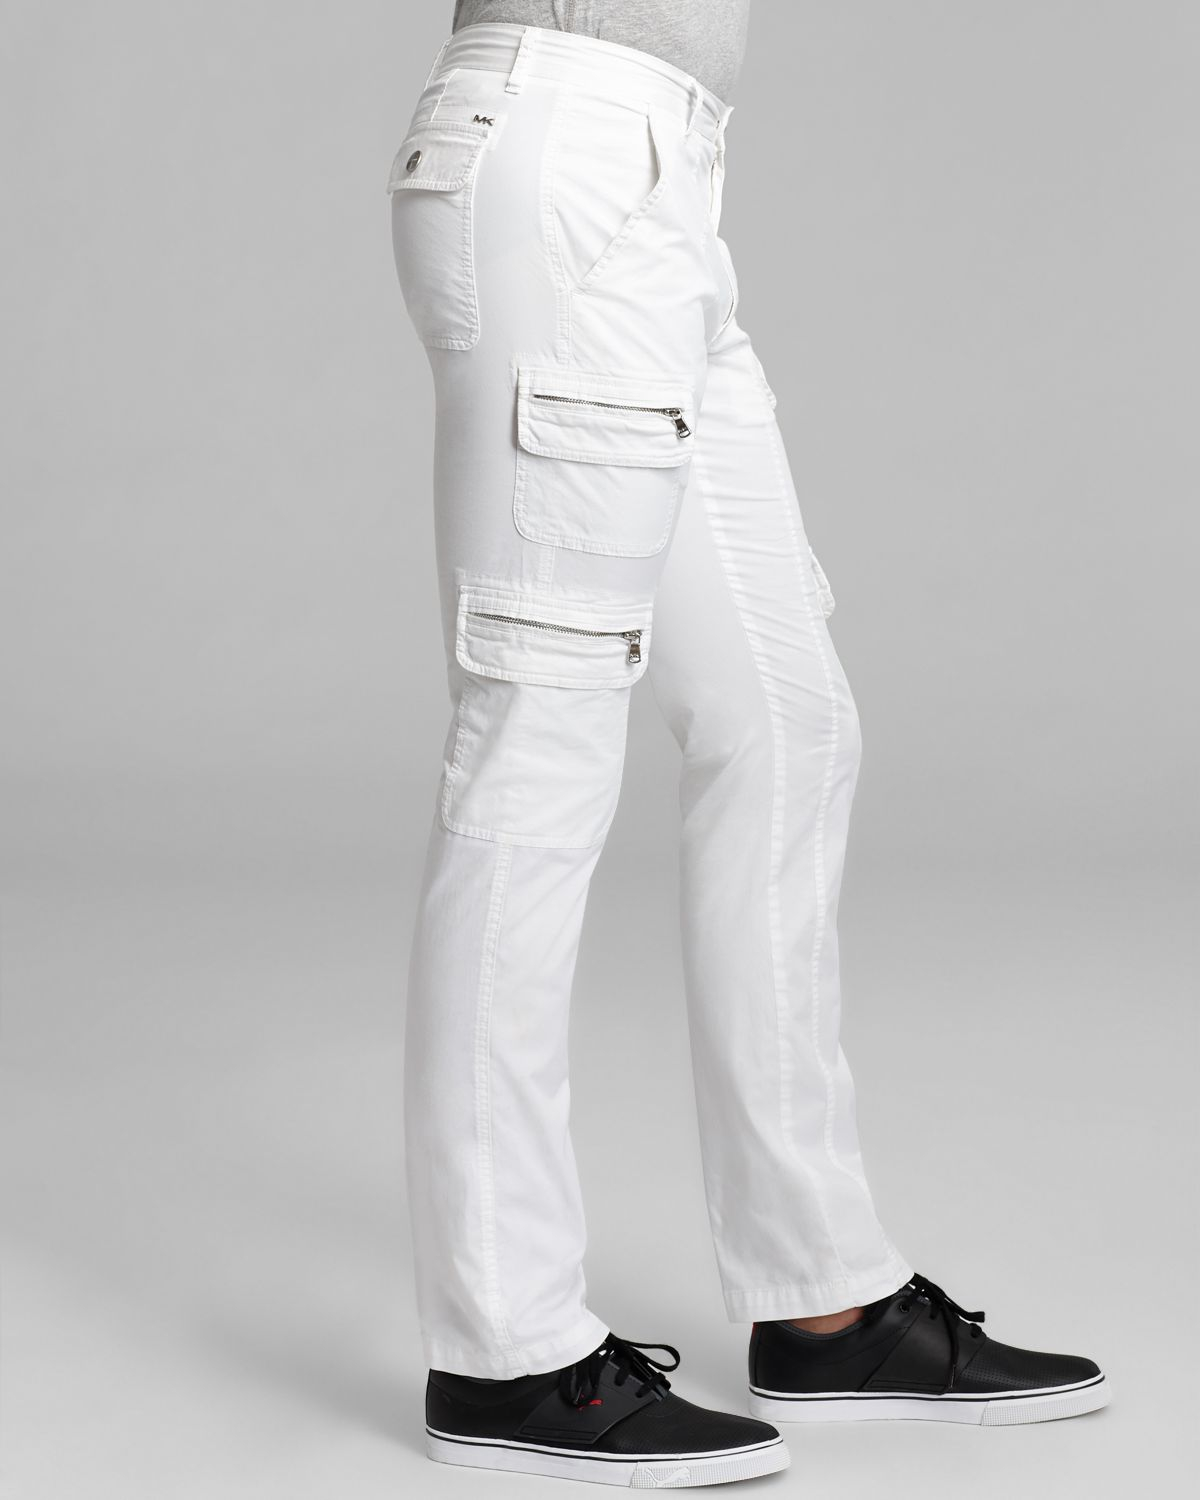 Lyst Michael Kors Twill Cargo Pants In White For Men